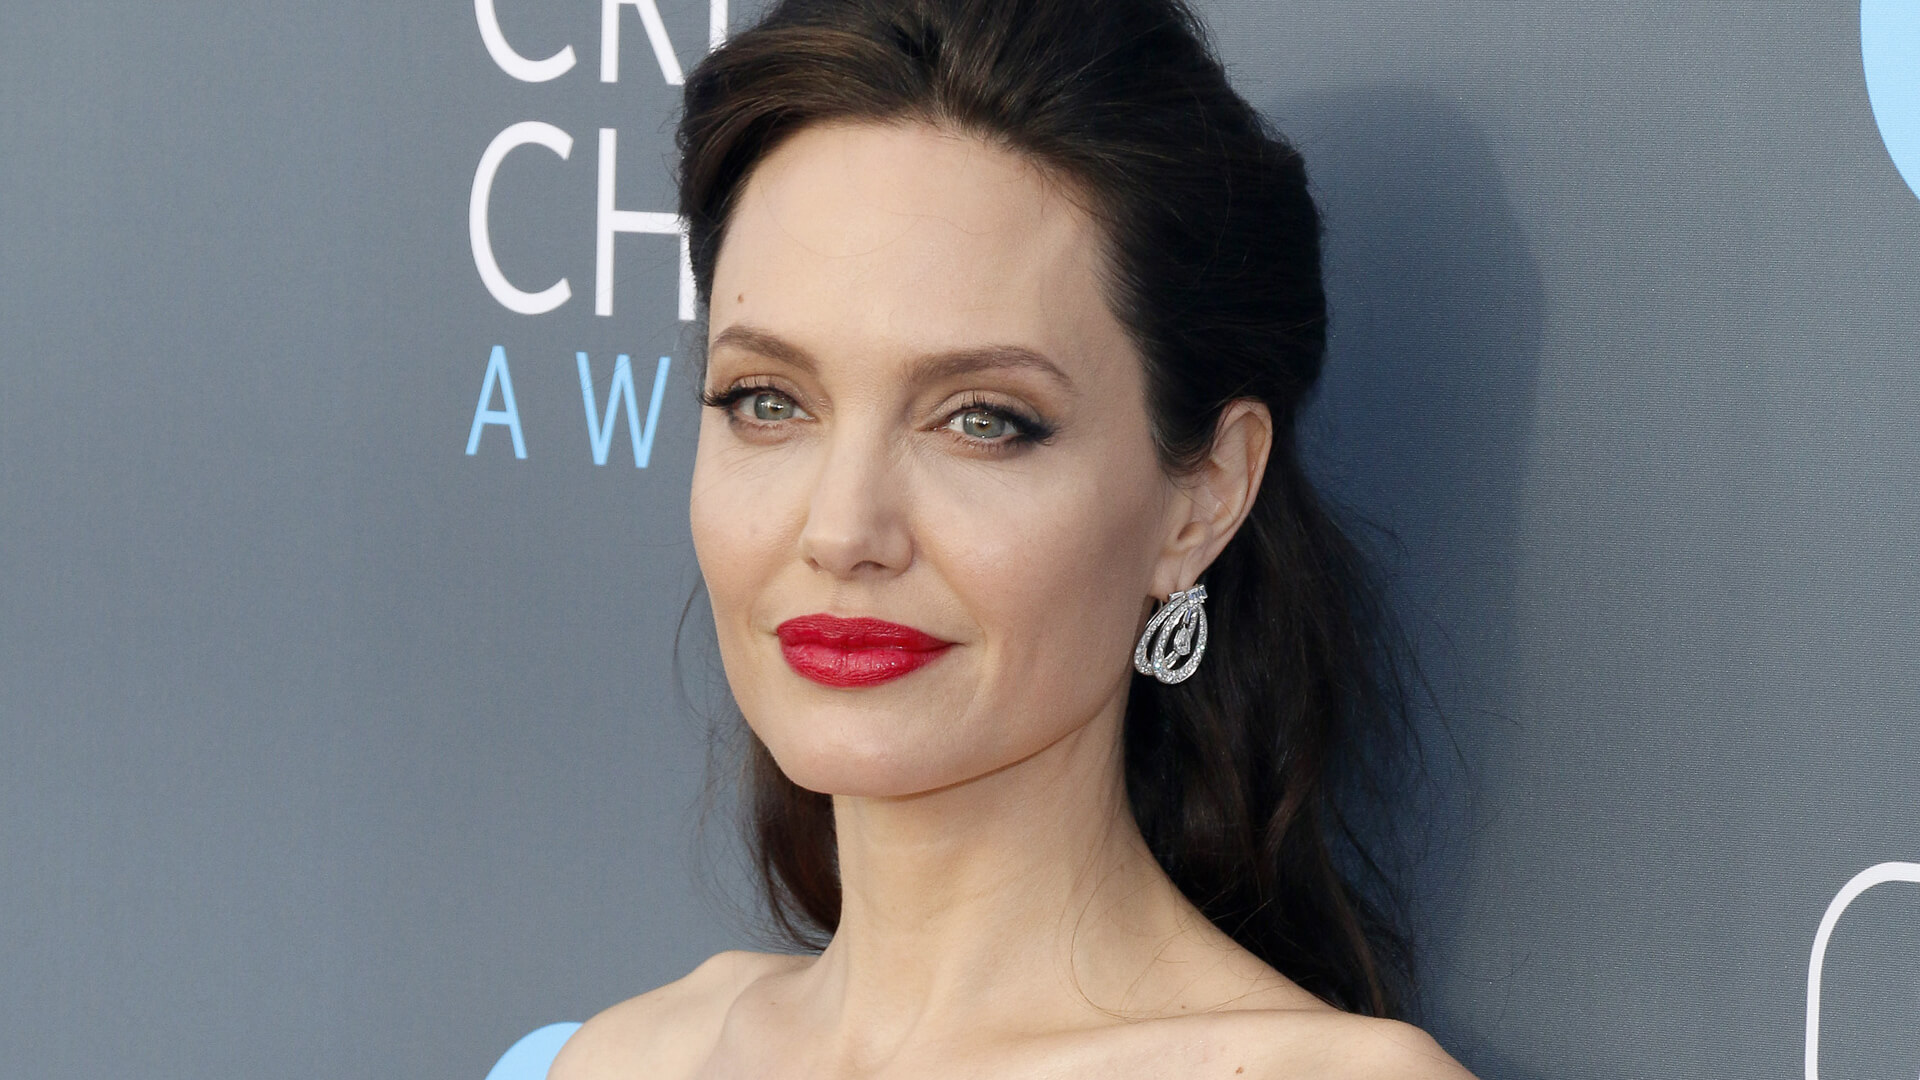 Angelina Jolie to star in thriller